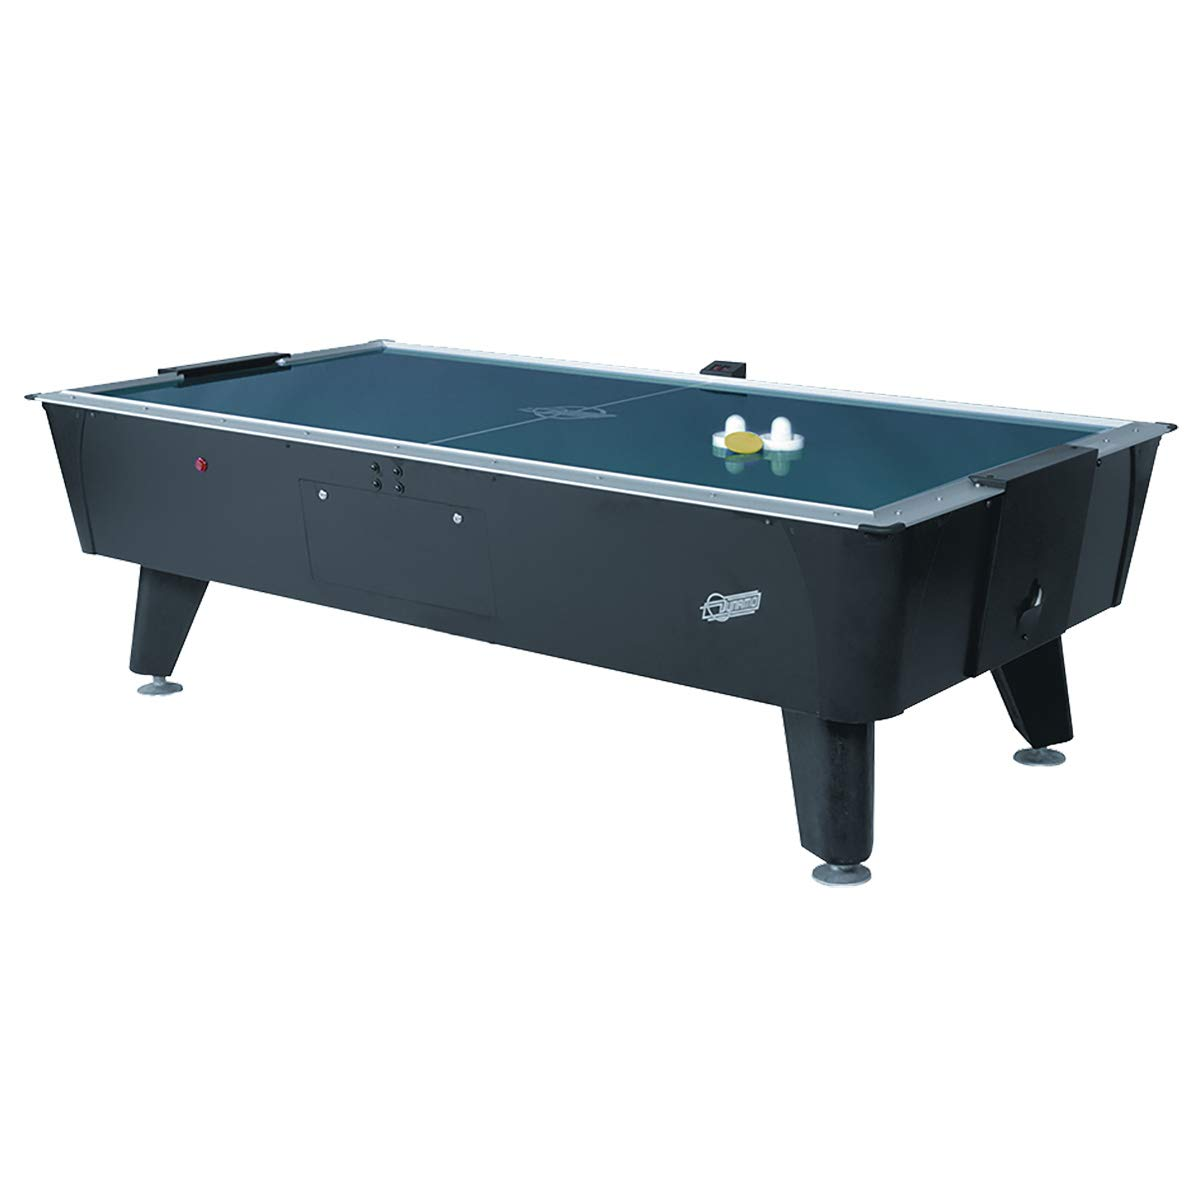 Valley-Dynamo Dynamo Pro Style 7' Air Hockey Table with Overhead Light